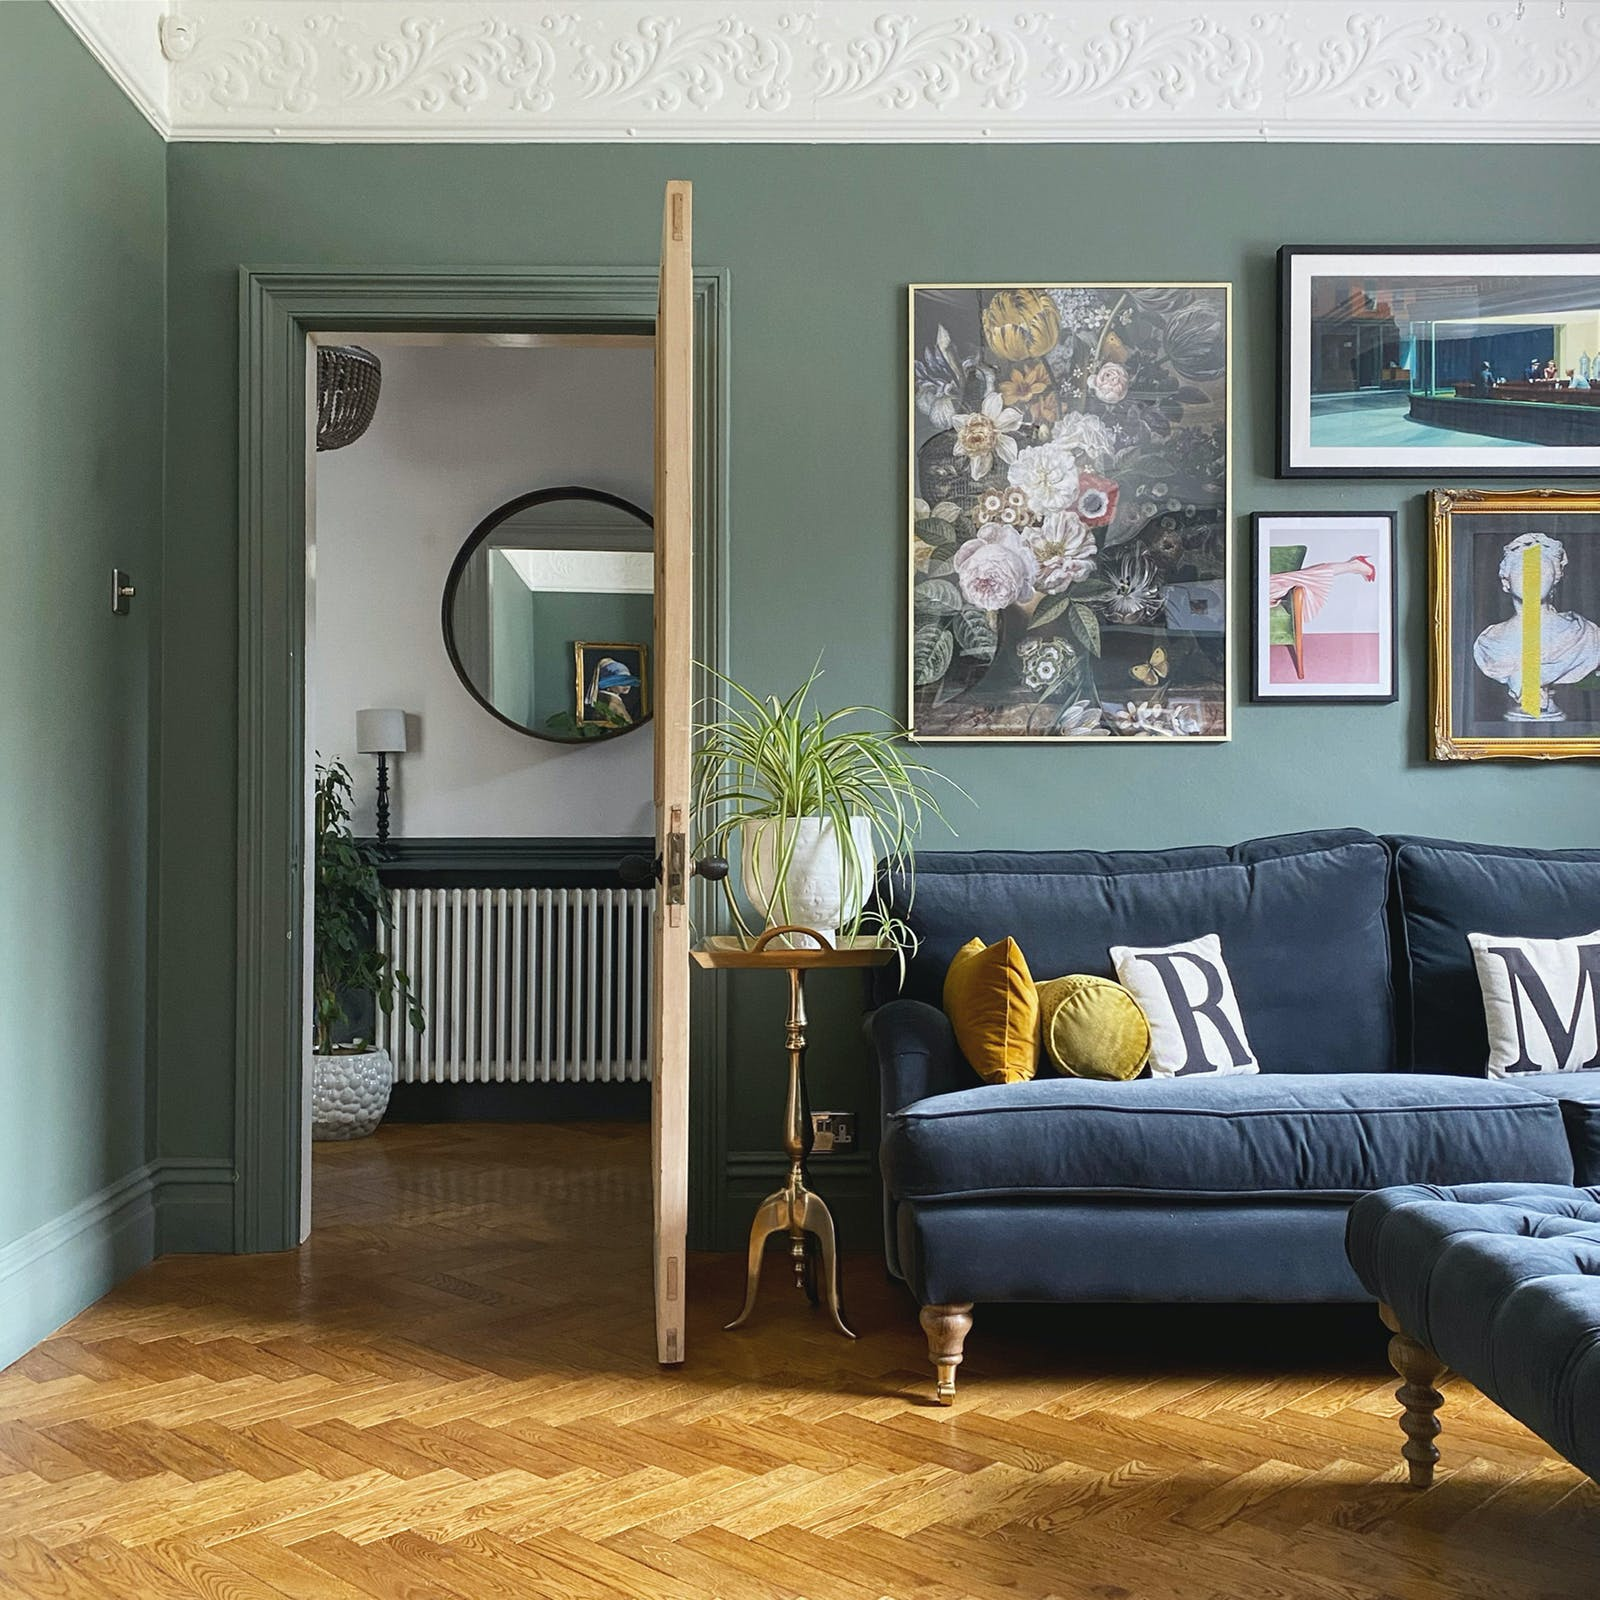 Living room painted in sage green with wooden floor, navy blue sofa and gallery wall